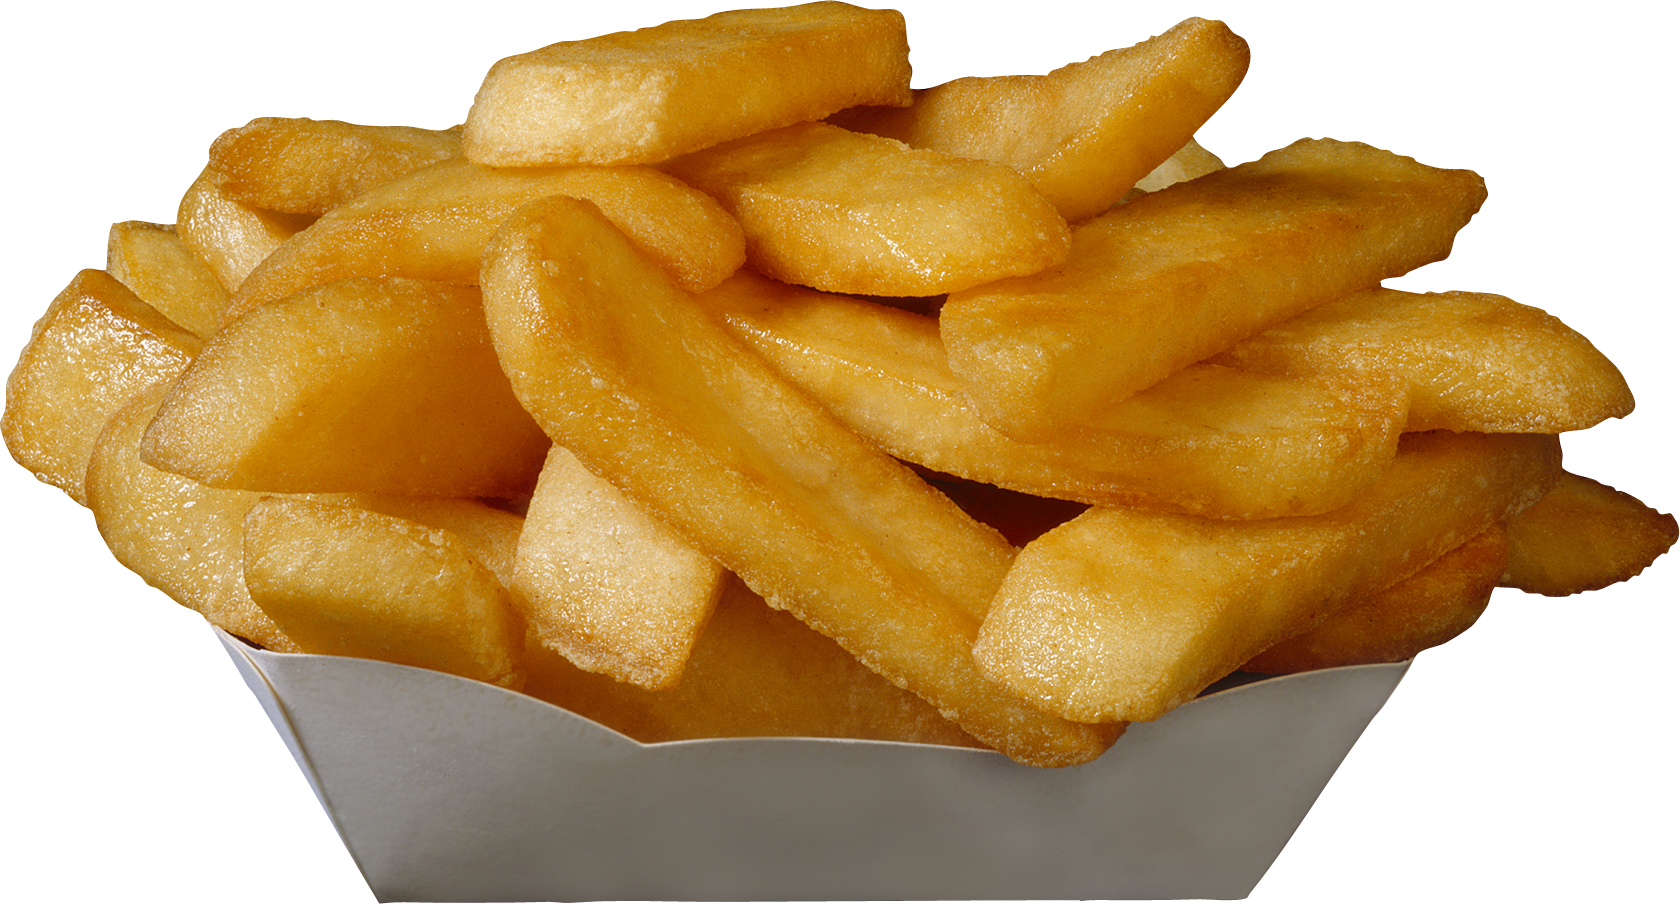 Fries Png Image Frozen French Fries Fries Healthy Cooking Oils